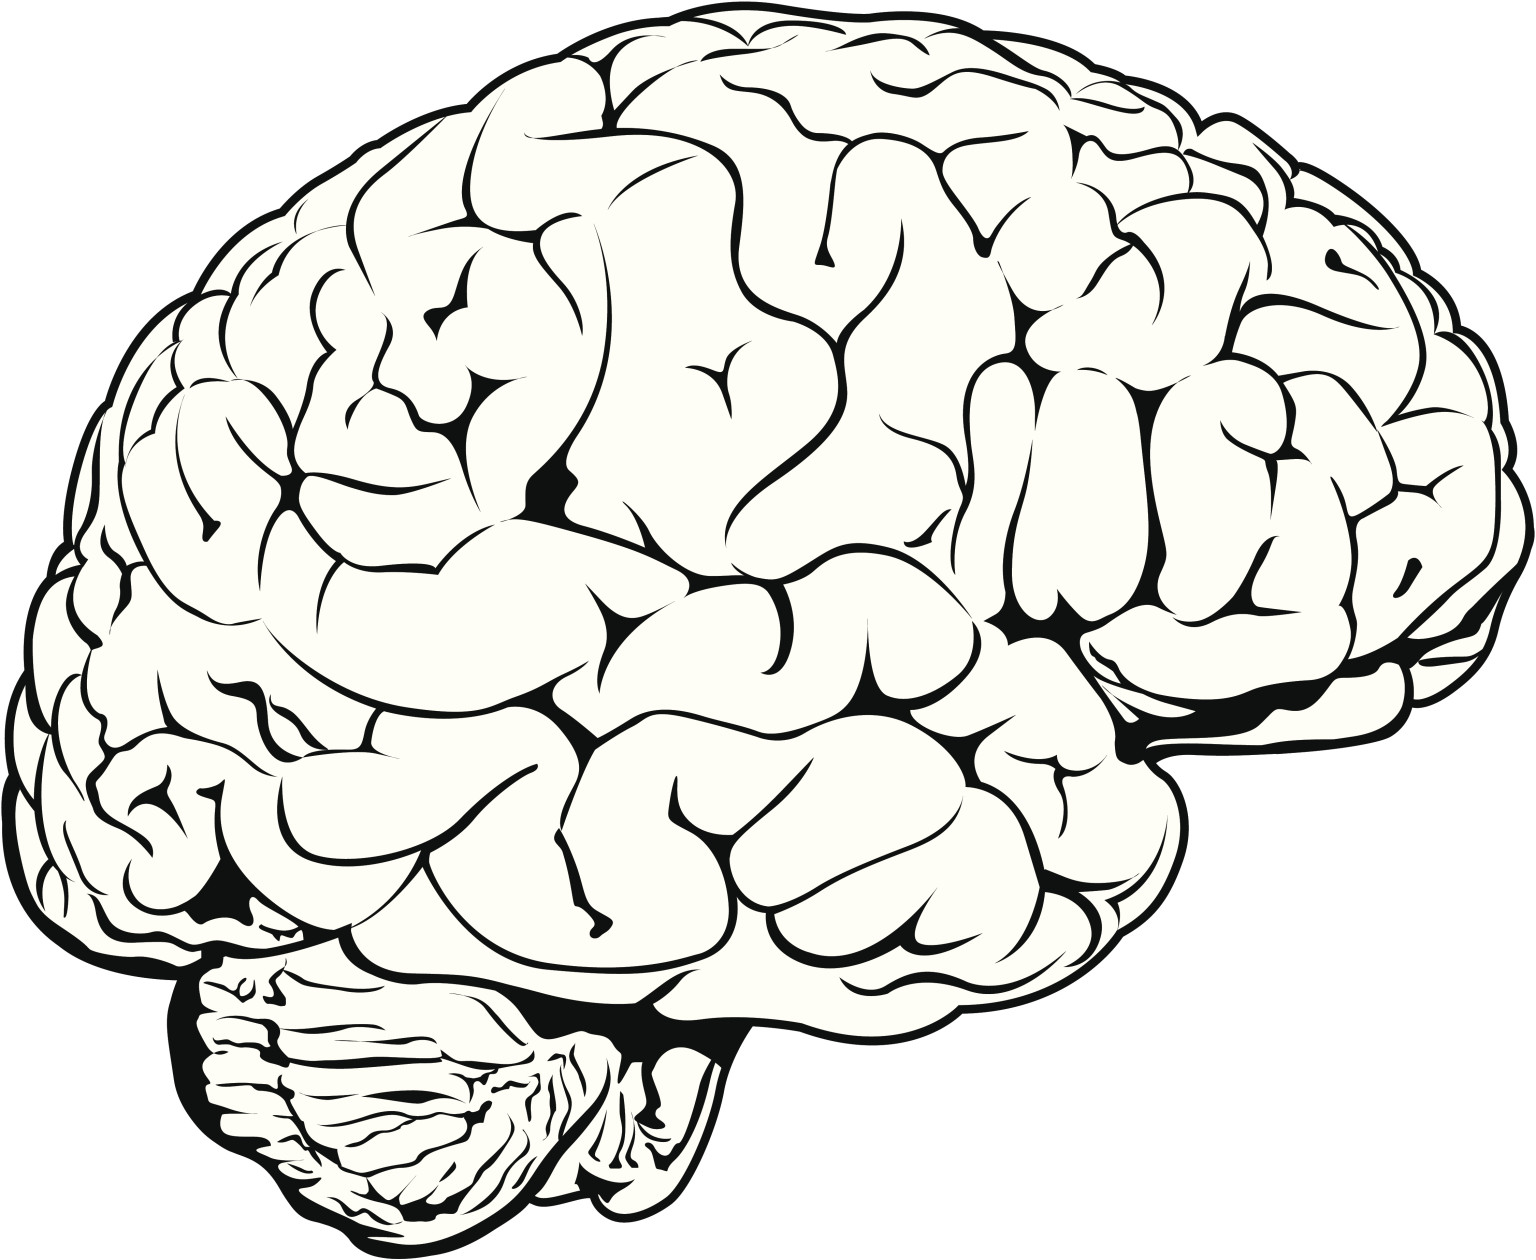 Brain frontal view clipart black and white banner black and white stock Free Brain Drawing Cliparts, Download Free Clip Art, Free Clip Art ... banner black and white stock